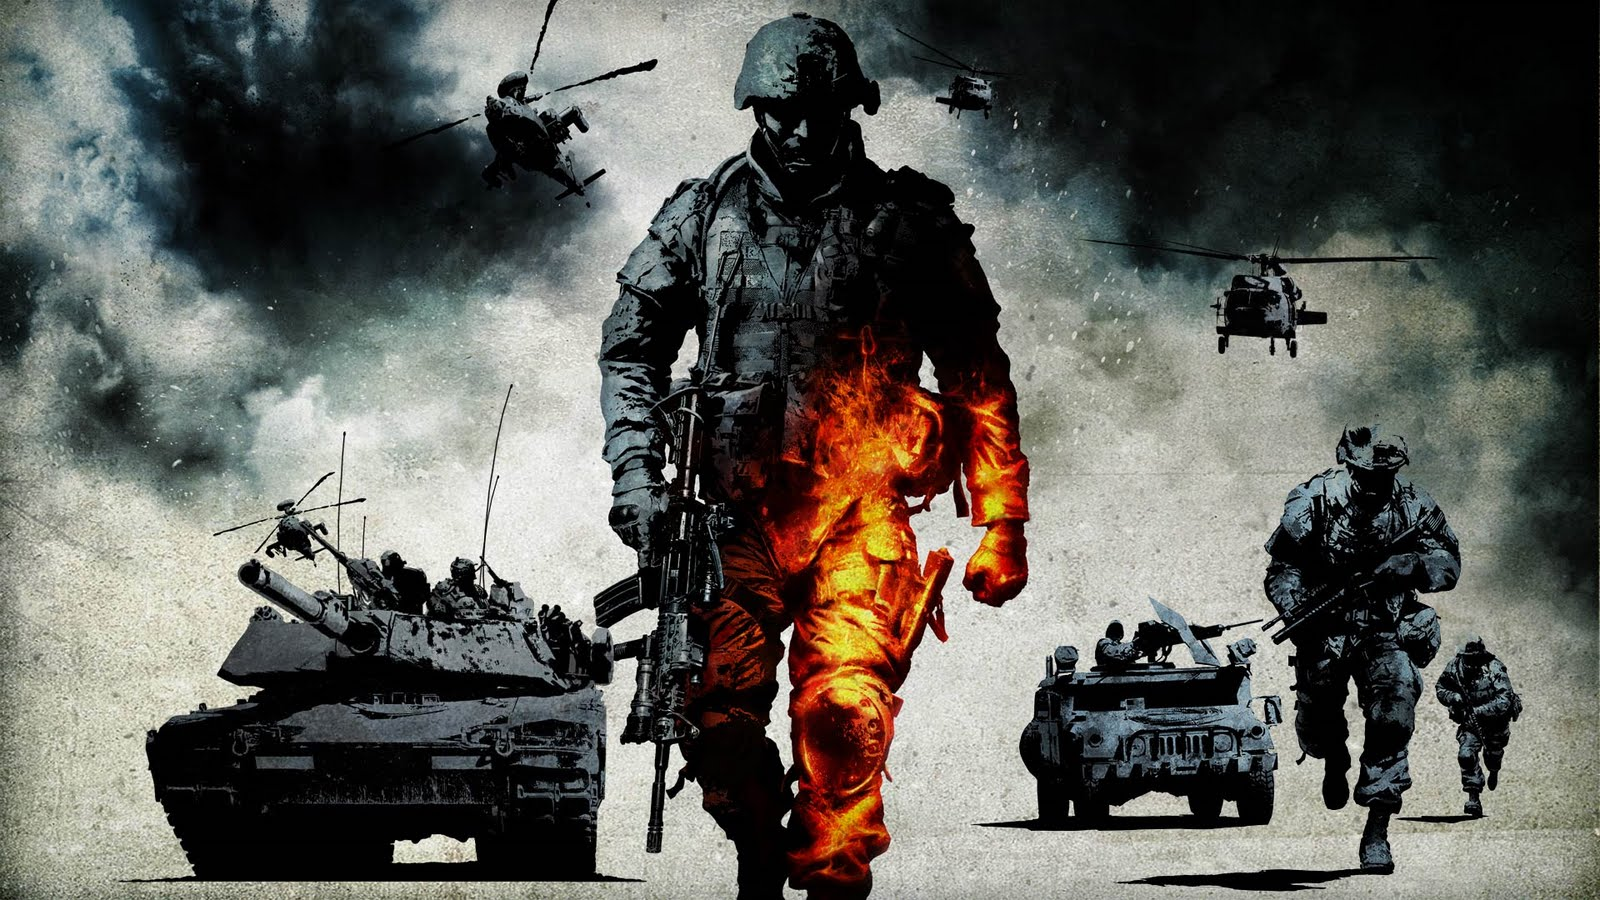 http://4.bp.blogspot.com/-yHnW7zvrhig/TZXc-WHD0uI/AAAAAAAADPc/mEYMF0tH2nA/s1600/Battlefield_Bad_Company_2_HD_Wallpapers_1.jpg